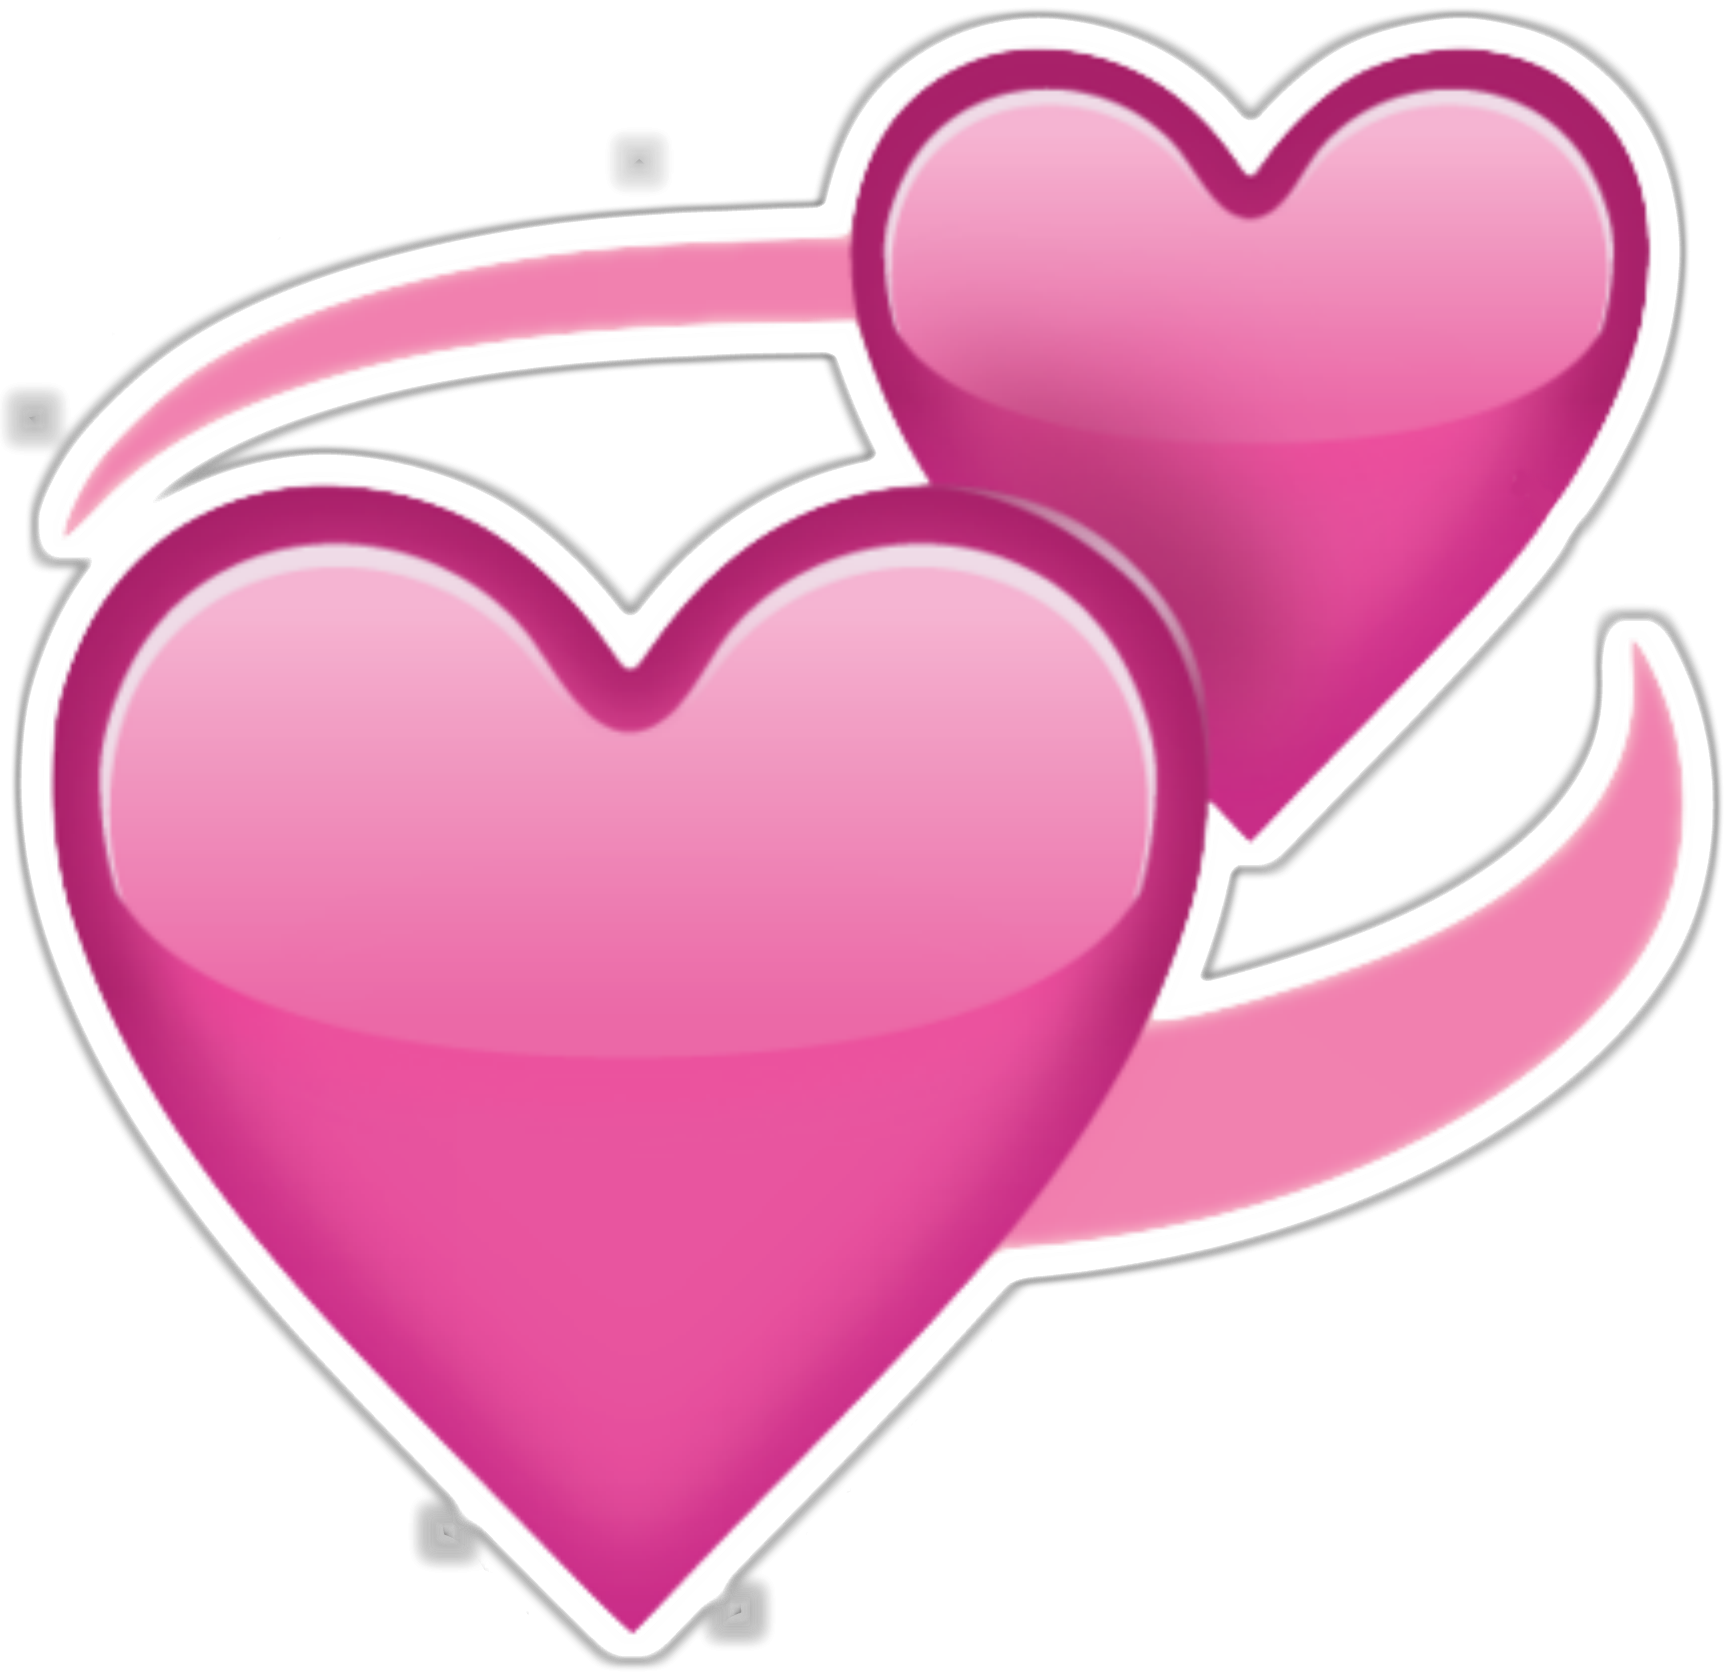 Pink Love Heart PNG HD - 122342